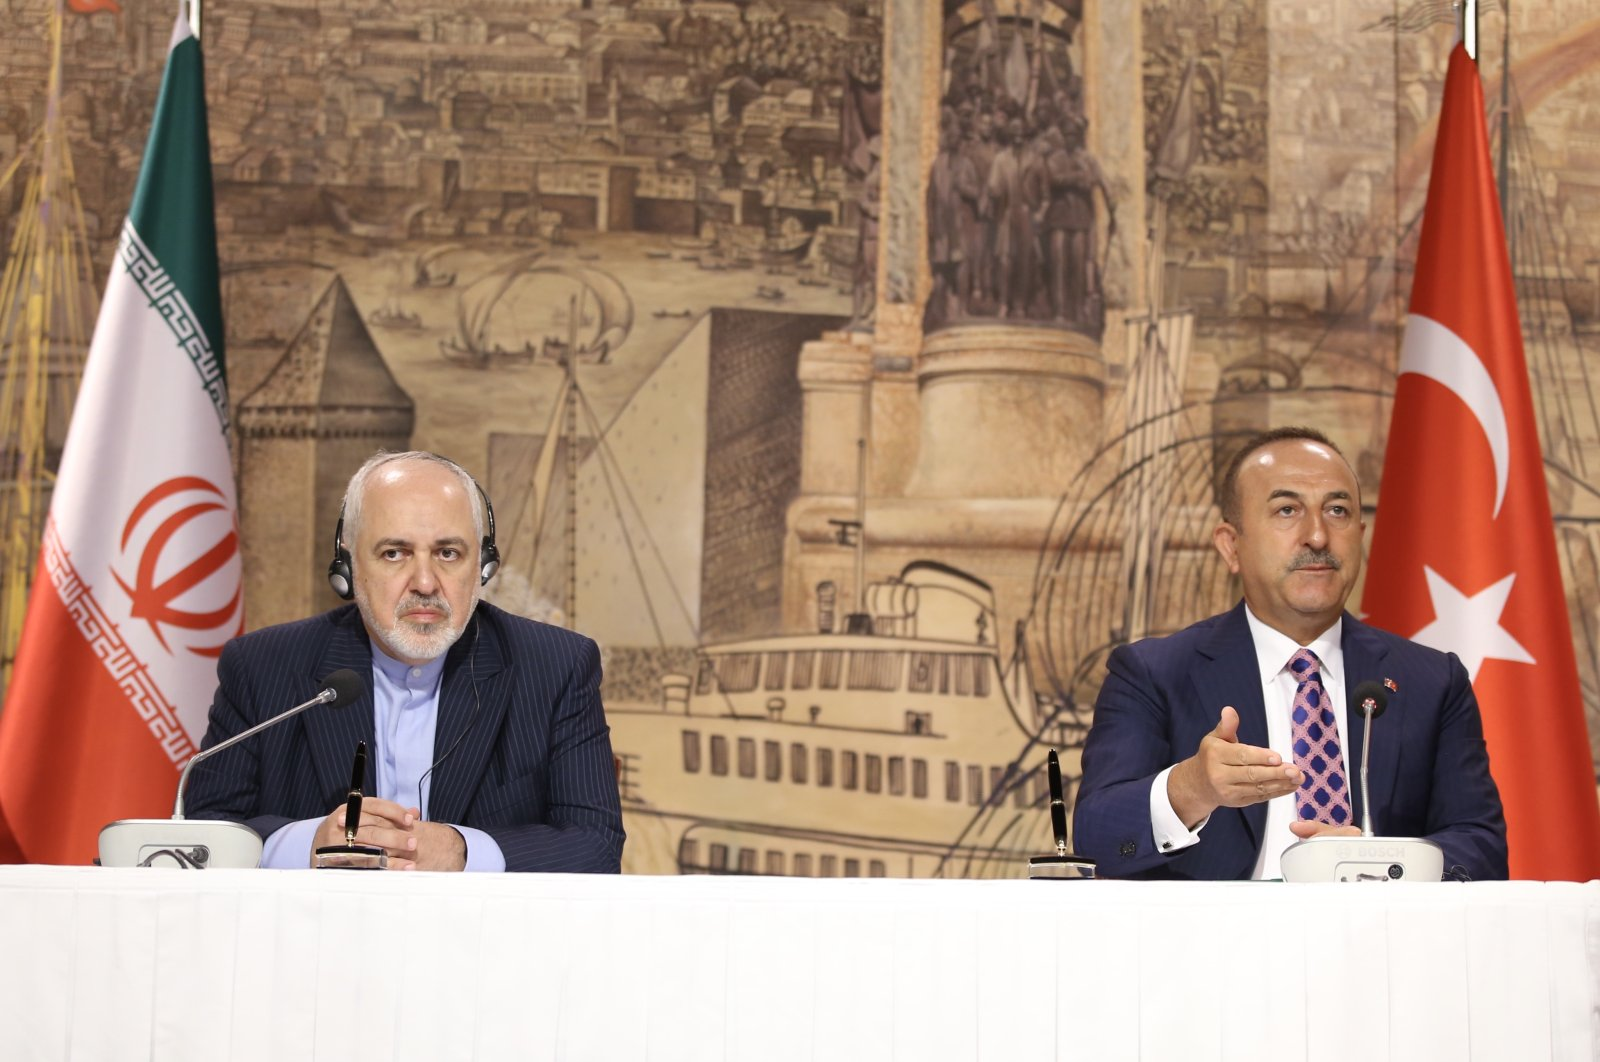 Iran's Foreign Minister Javad Zarif (L) and Turkish Foreign Minister Mevlüt Çavuşoğlu during a joint press conference, Istanbul, June 15, 2020. (AA Photo)